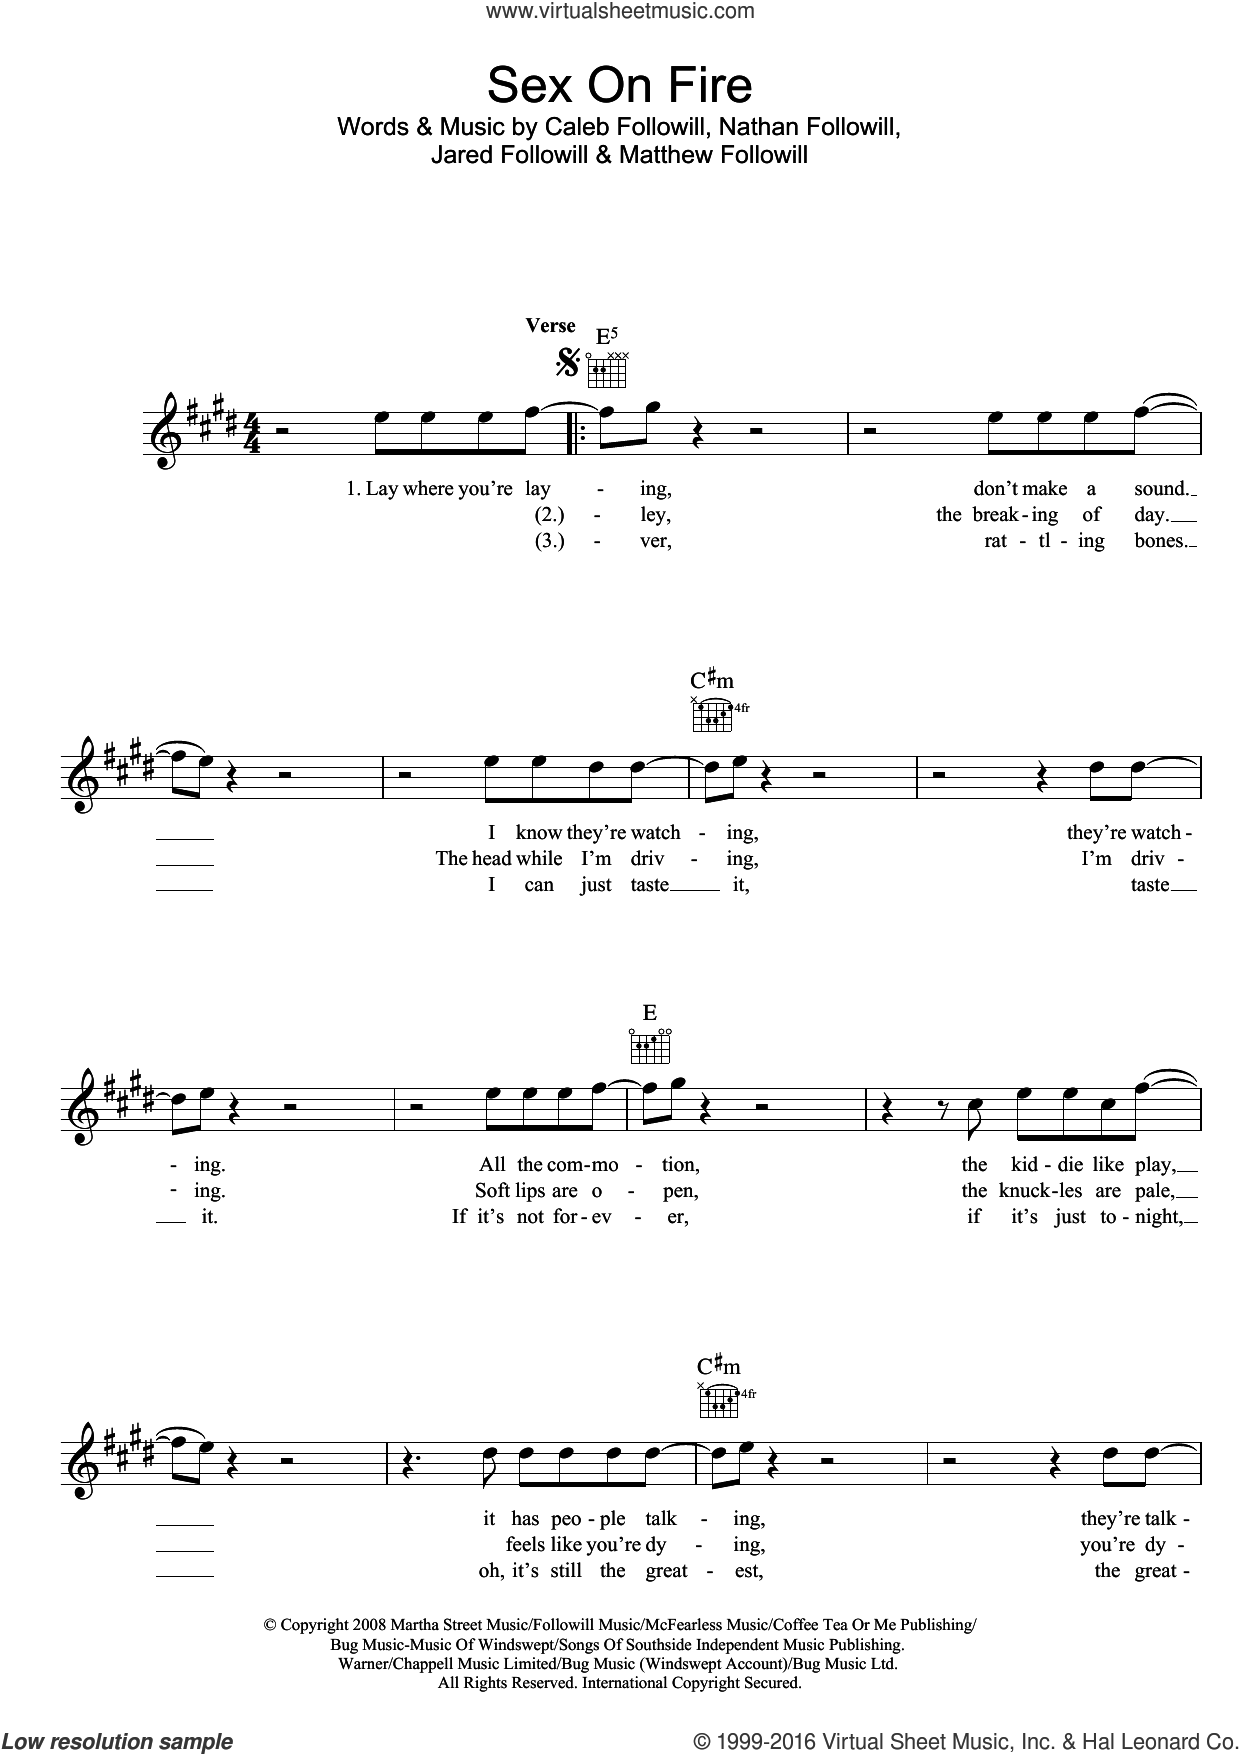 Sex On Fire sheet music for voice and other instruments (fake book) by Kings Of Leon, Caleb Followill, Jared Followill, Matthew Followill and Nathan Followill, intermediate